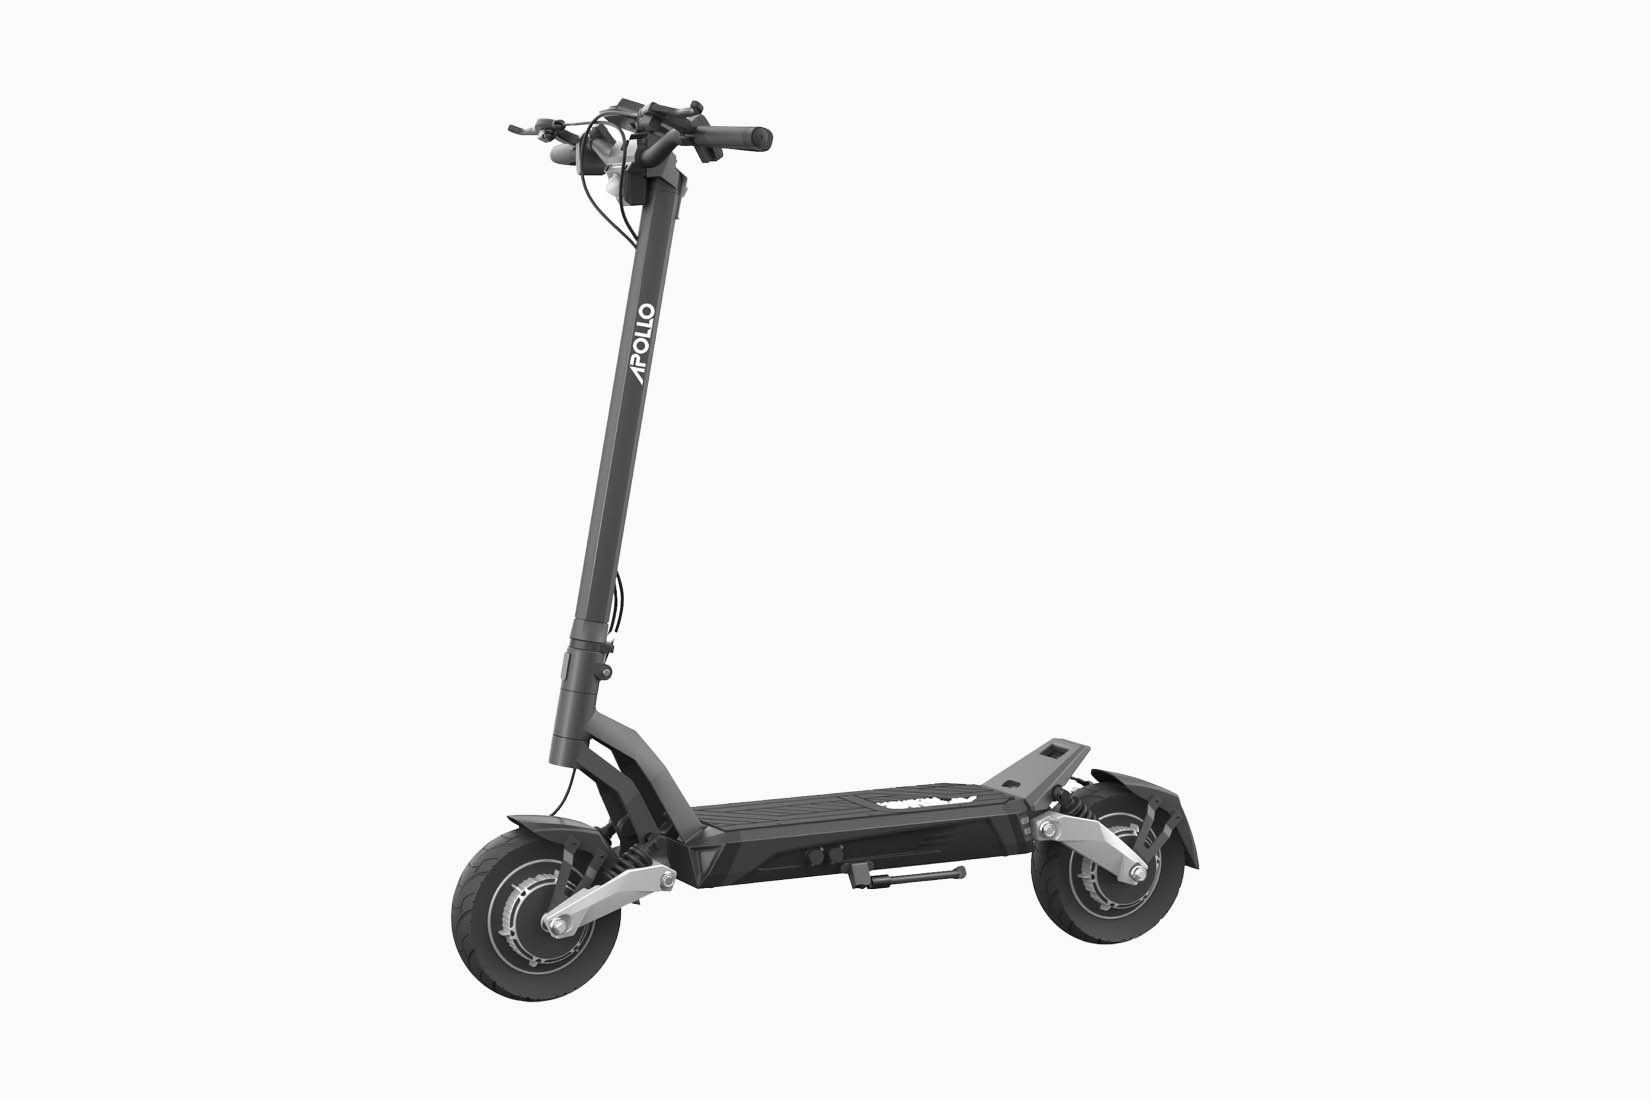 best electric scooter apollo phantom review - Luxe Digital